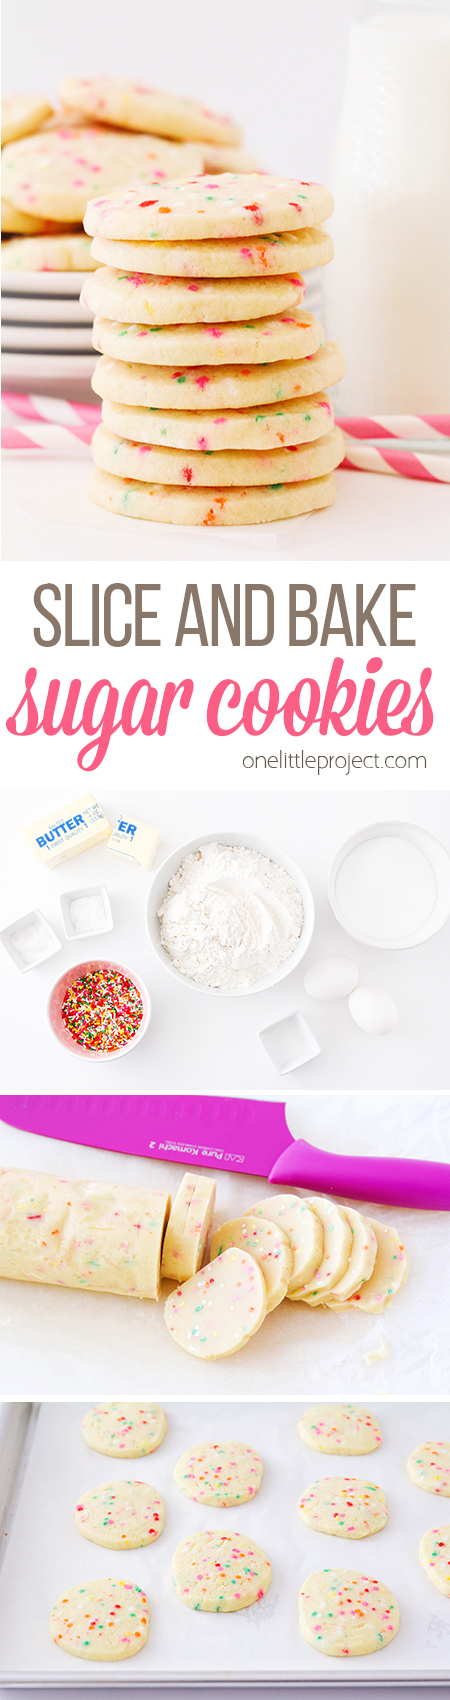 Sprinkle Sugar Cookies - Slice and Bake - One Little Project